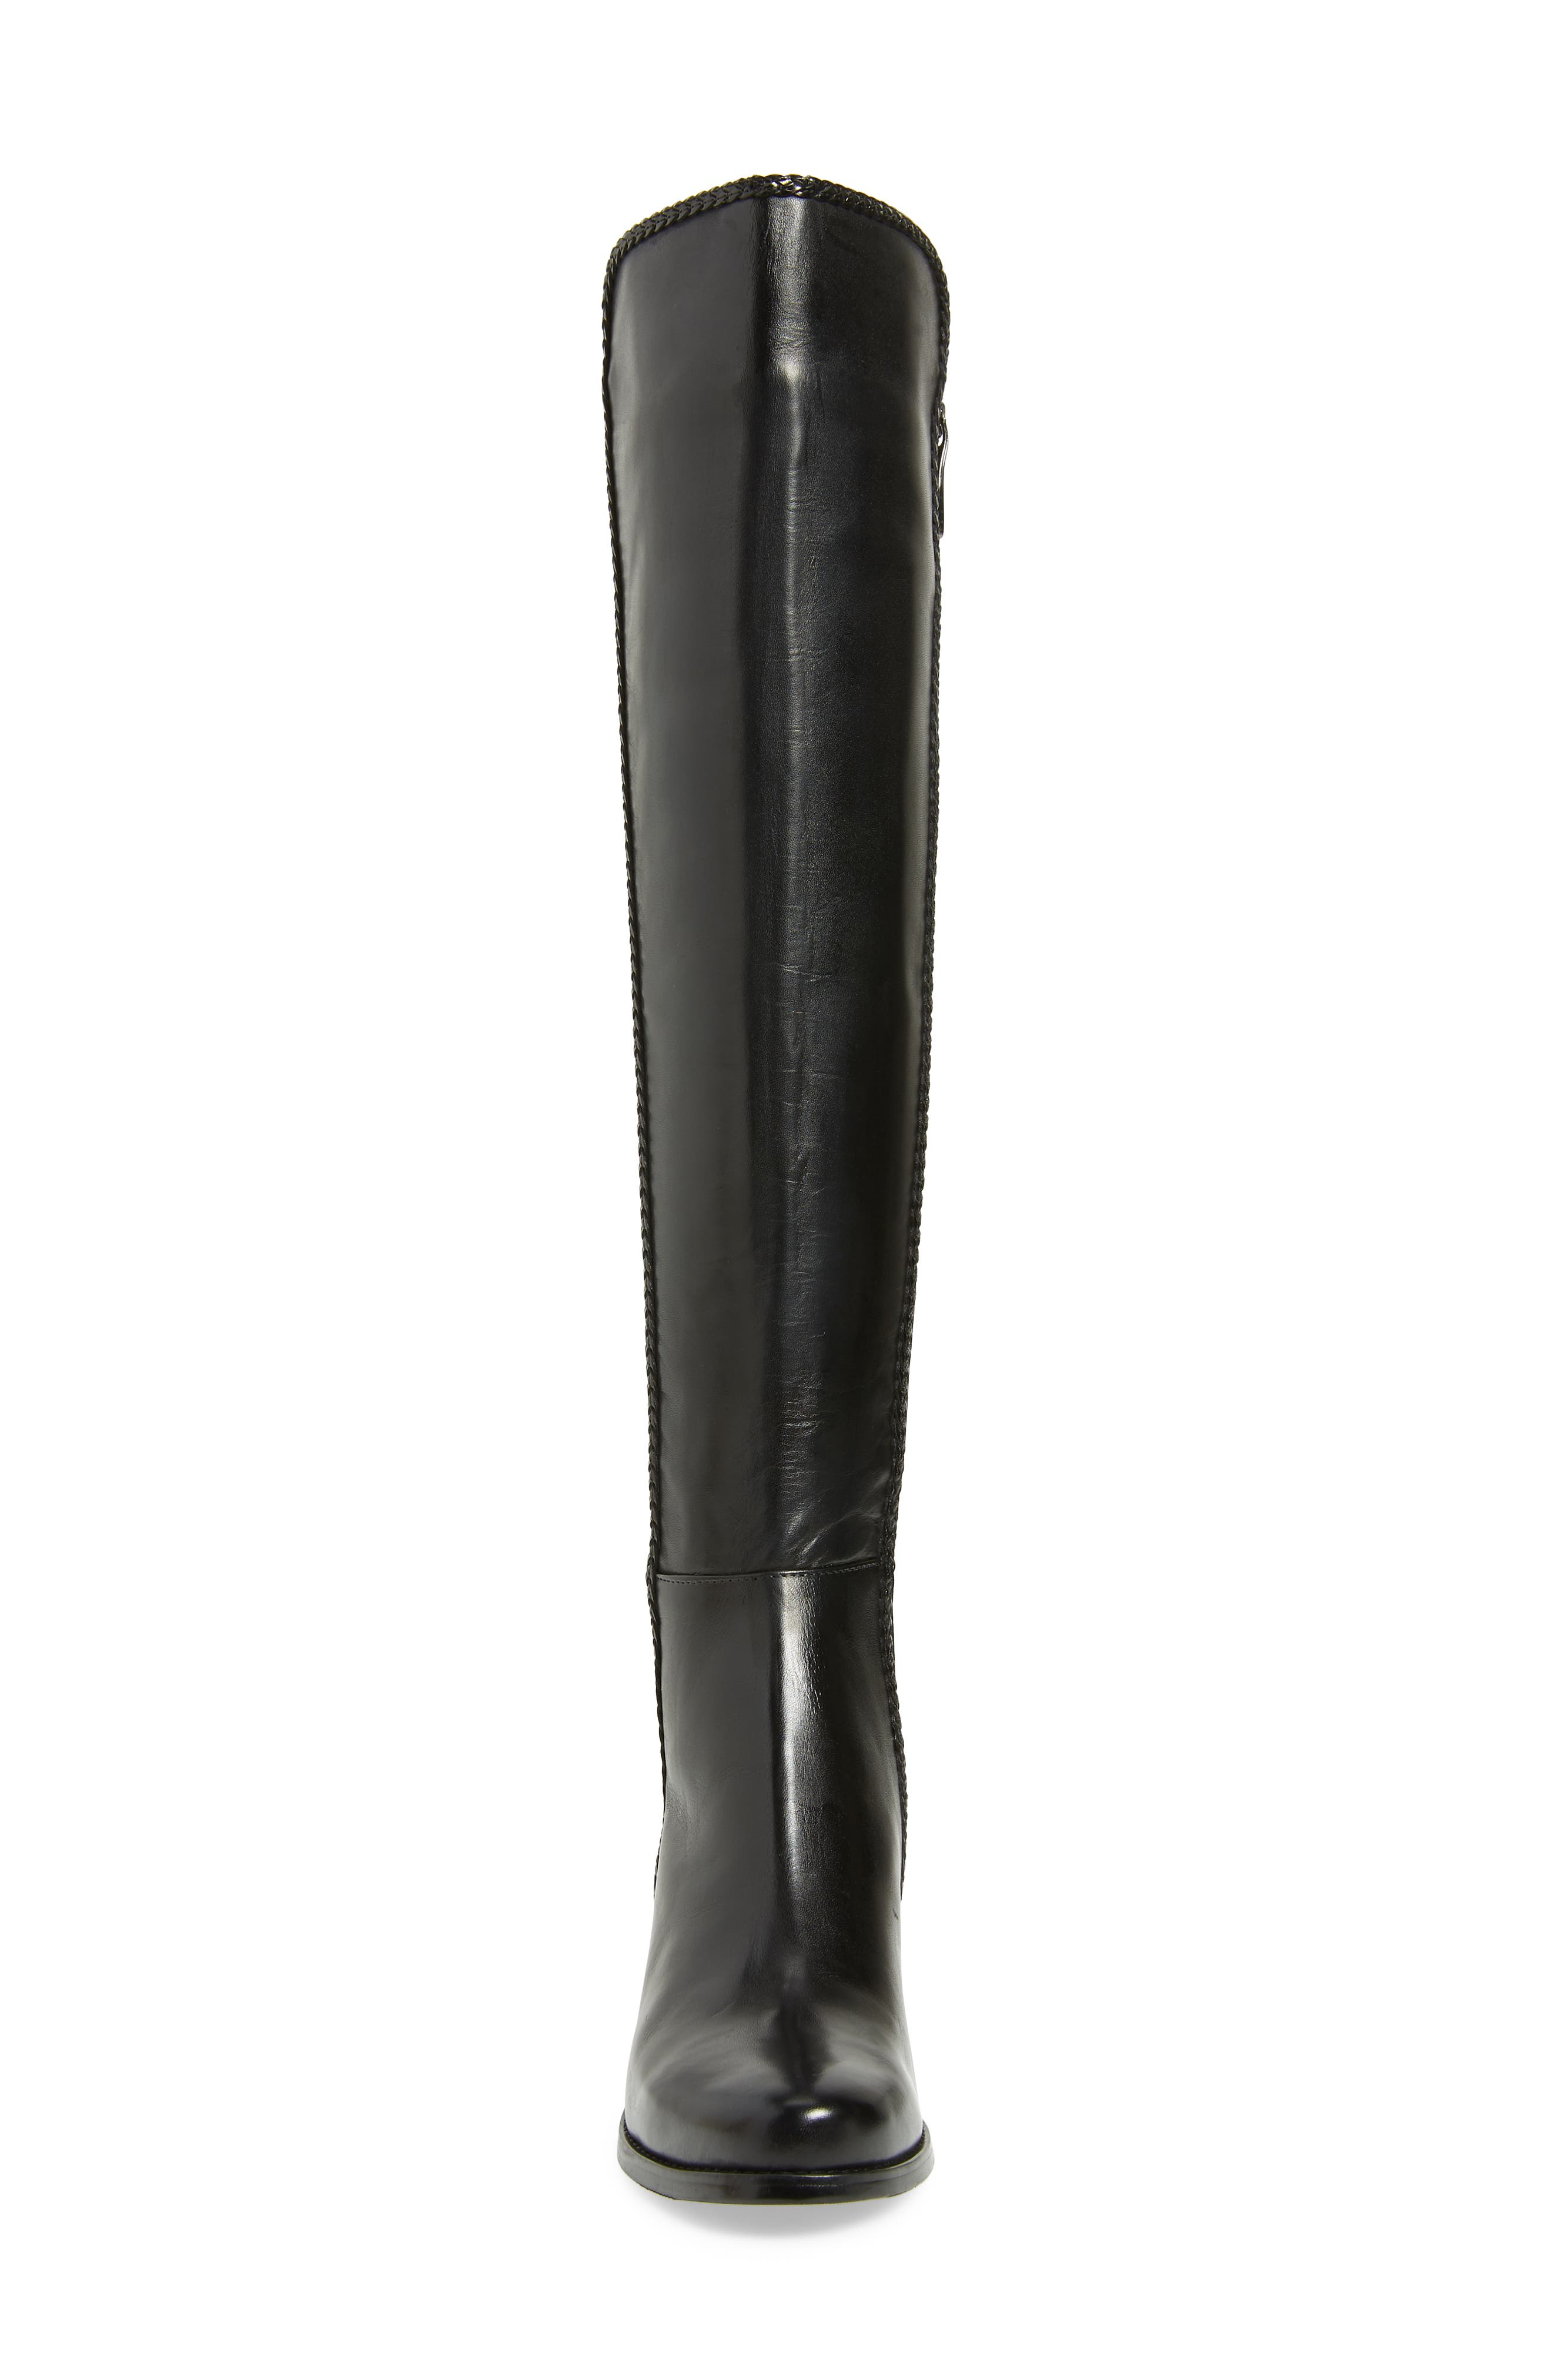 AQUADIVA, Florence Waterproof Over the Knee Boot, Alternate thumbnail 4, color, BLACK LEATHER